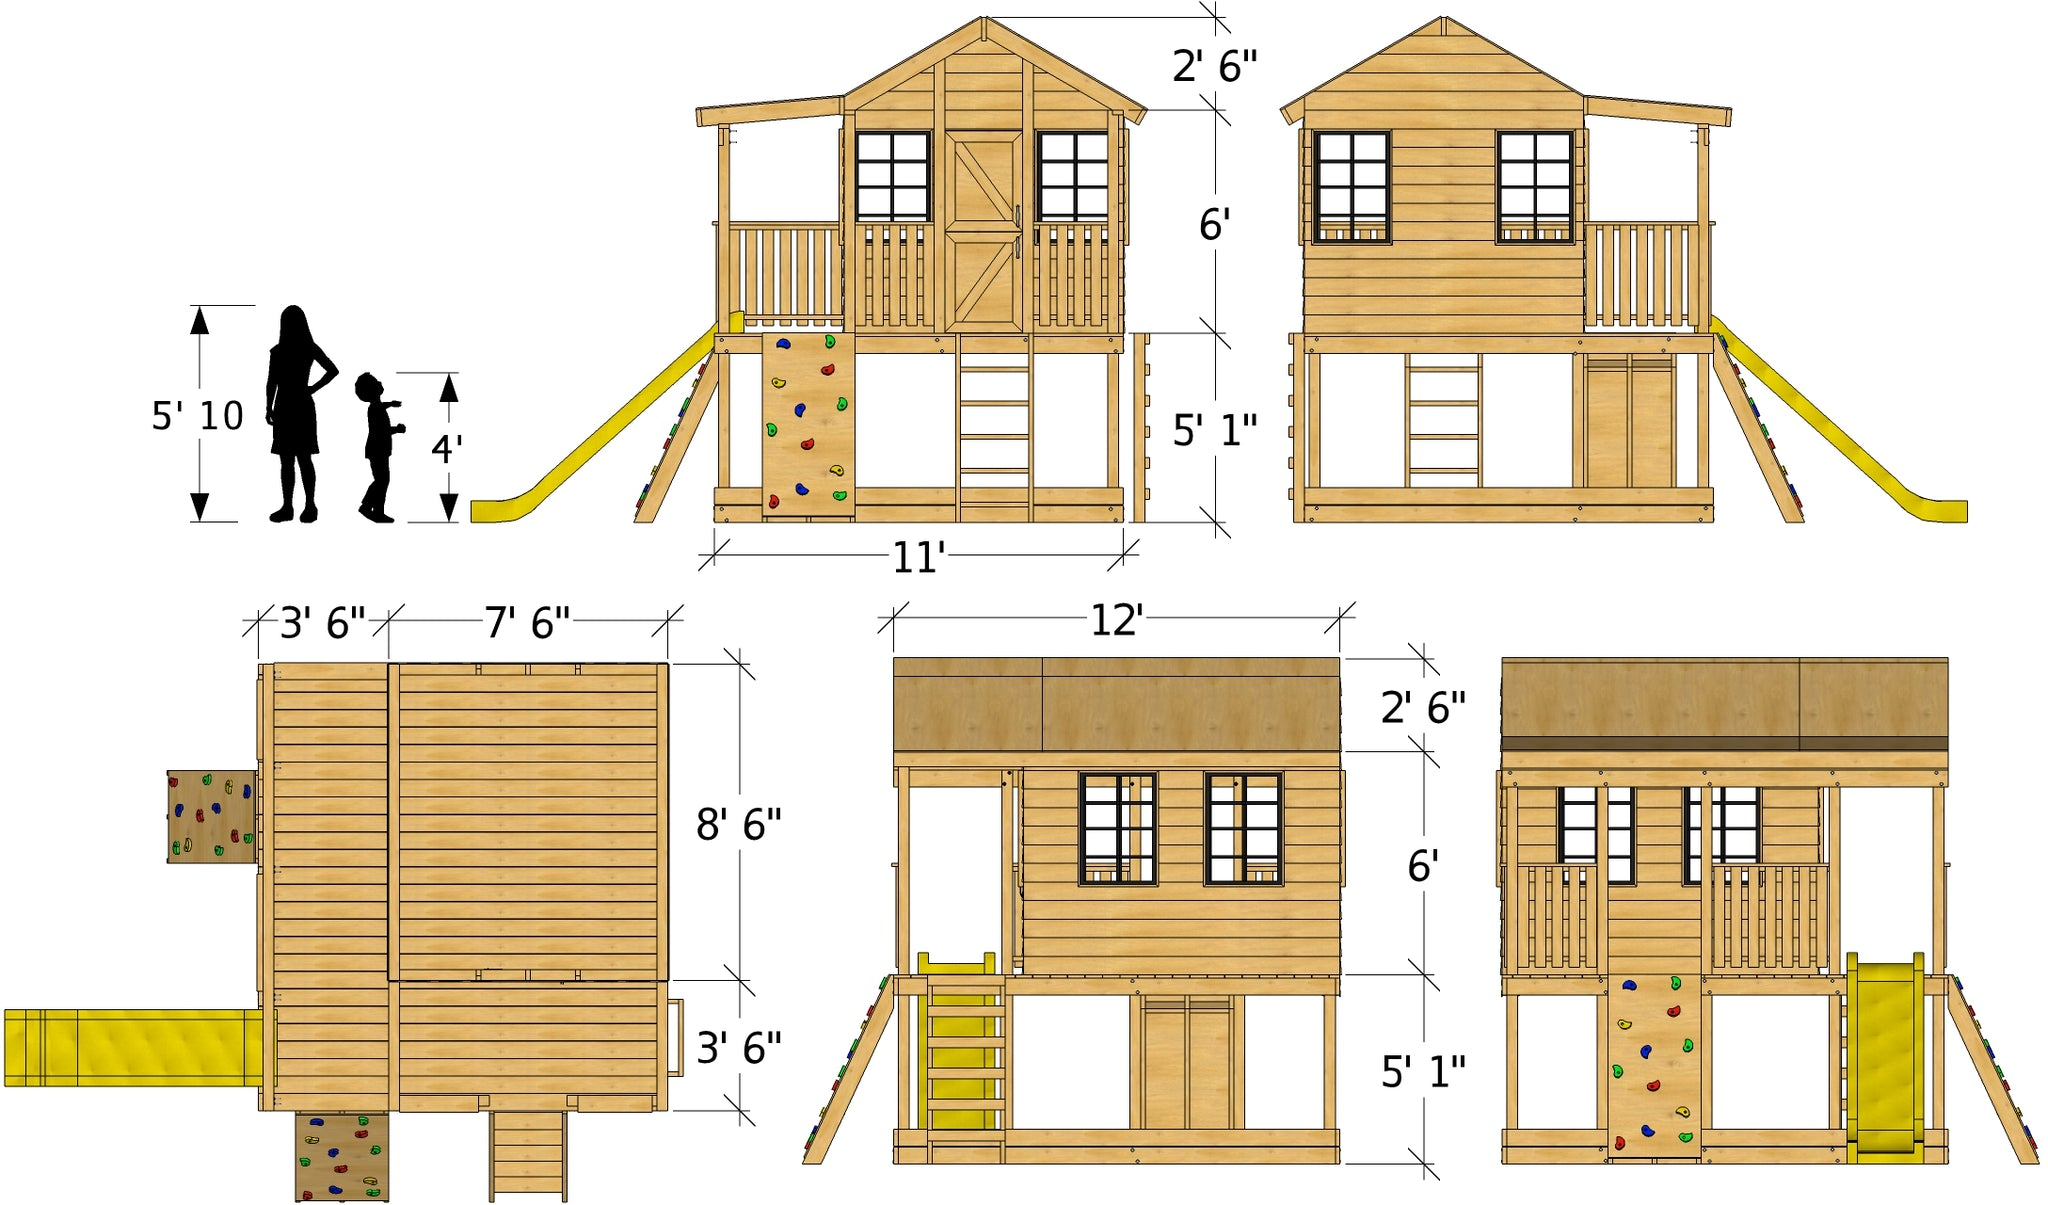 Do It Yourself Home Design: 11x12 Randy's Ranch Playhouse Plan For Kids